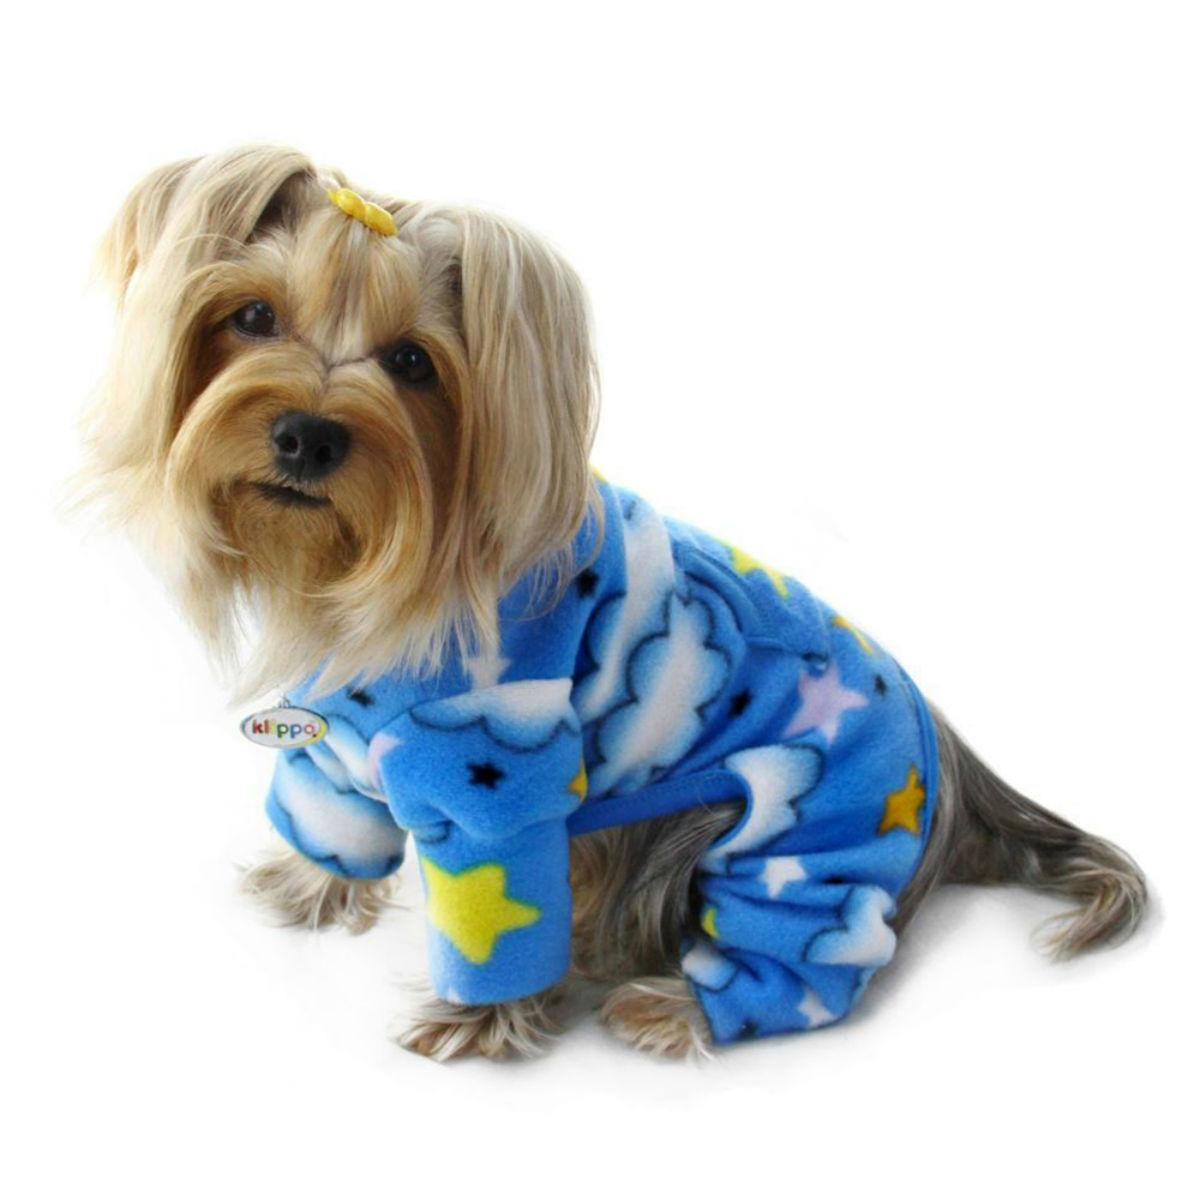 Stars and Clouds Turtleneck Fleece Dog Pajamas by Klippo